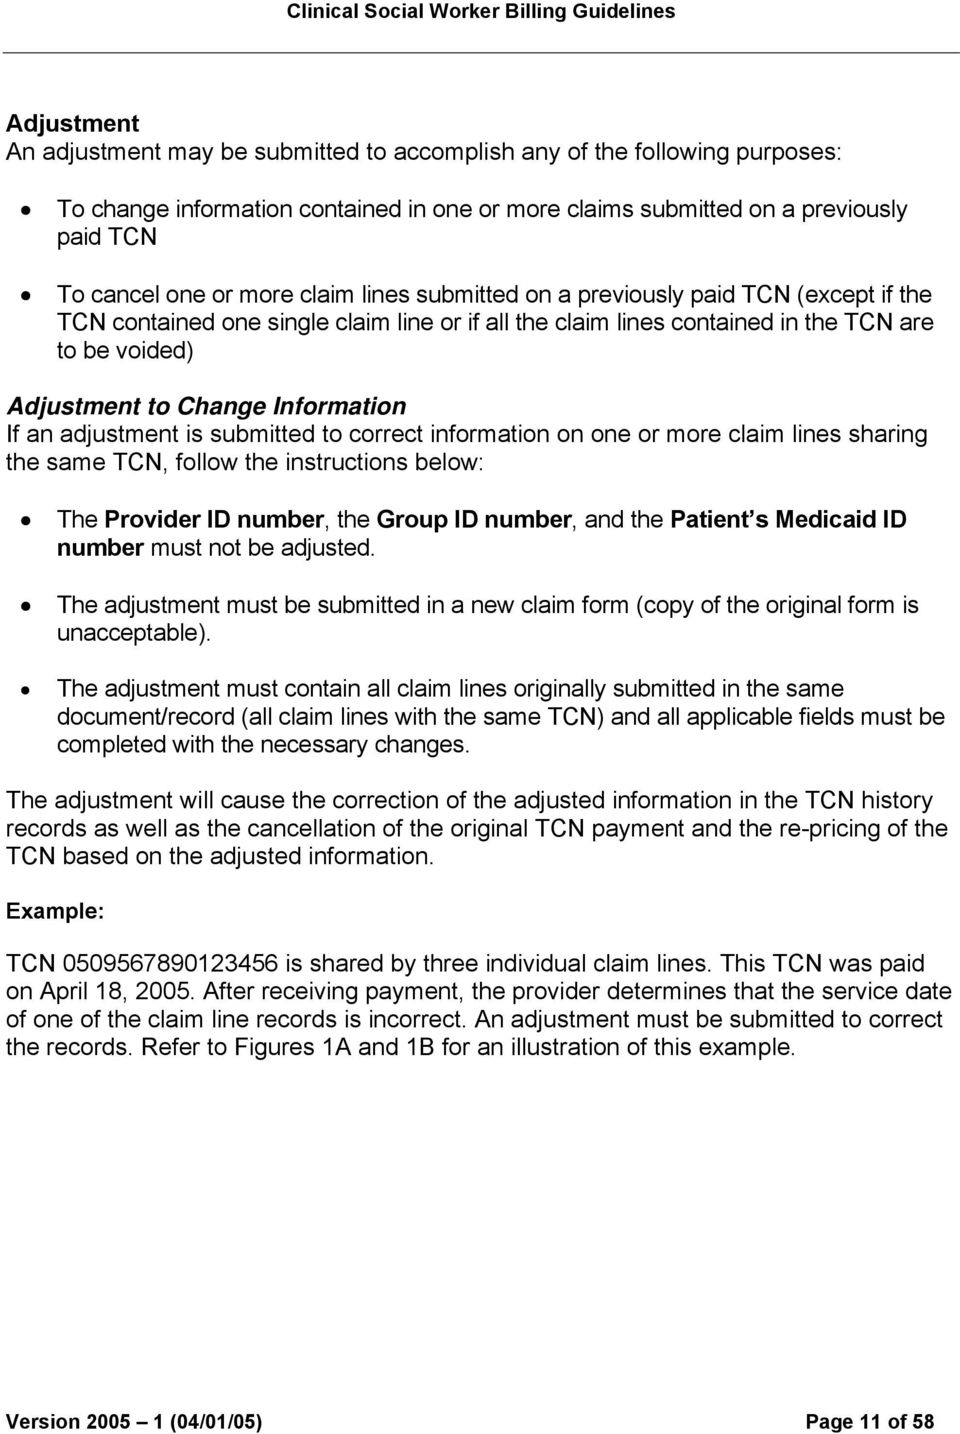 voided) Adjustment to Change Information If an adjustment is submitted to correct information on one or more claim lines sharing the same TCN, follow the instructions below: The Provider ID number,